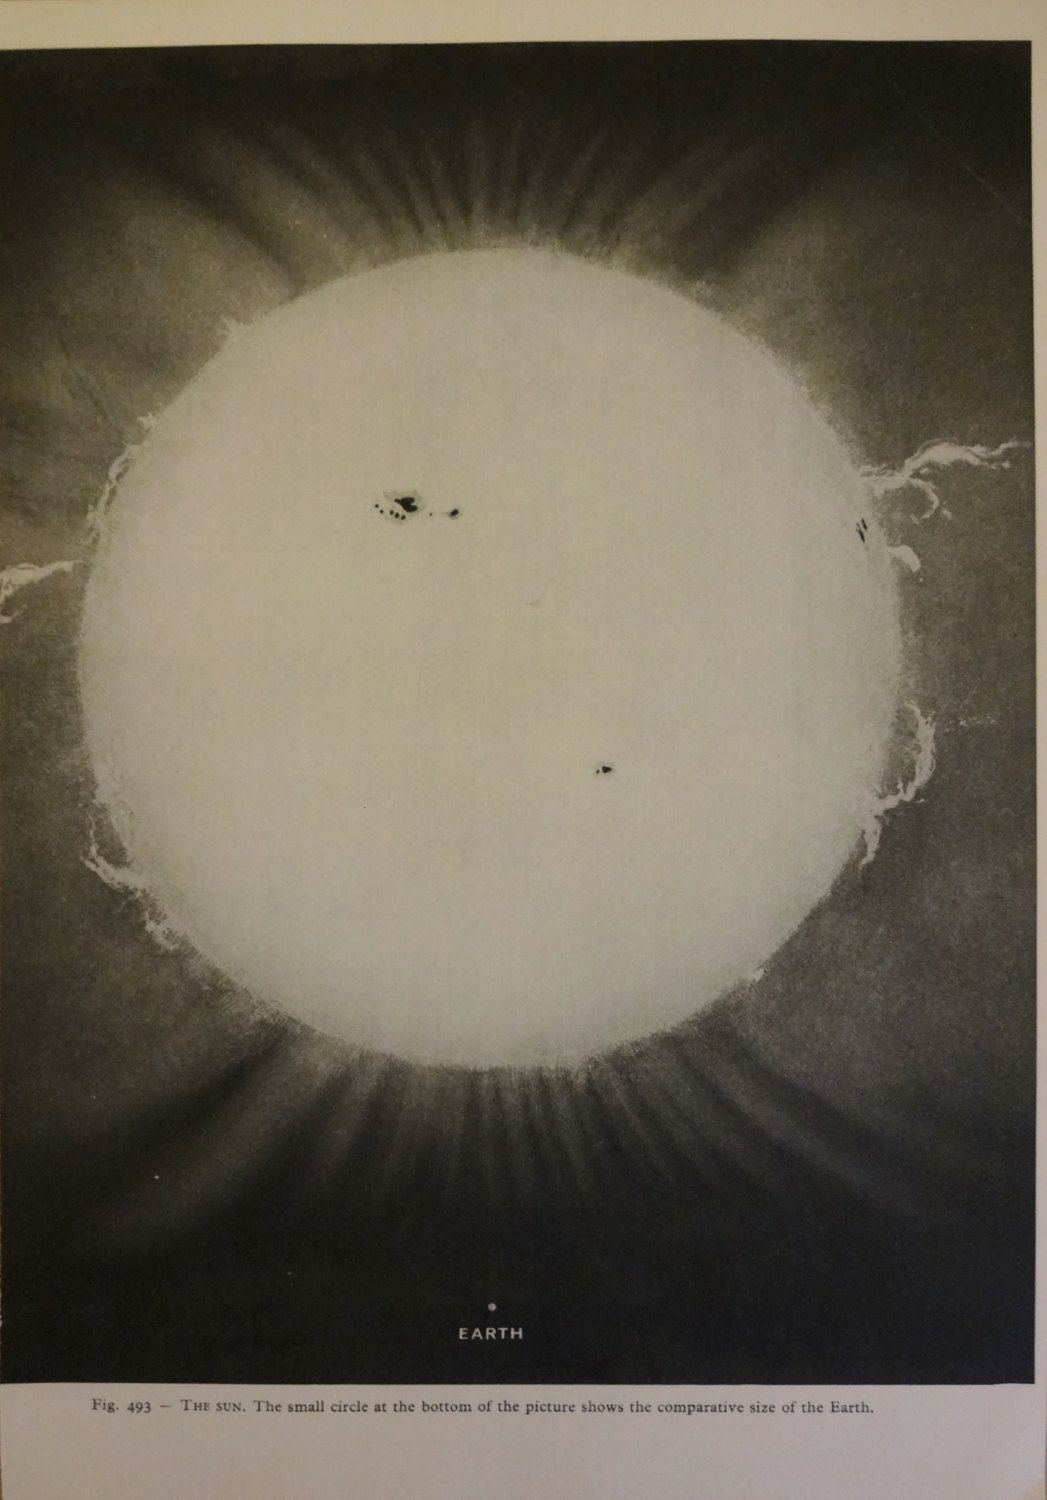 1950 S Original Sun Earth Vintage Astronomy Planet Astrology Print 10 00 Via Etsy Sun And Earth Space And Astronomy Astronomy